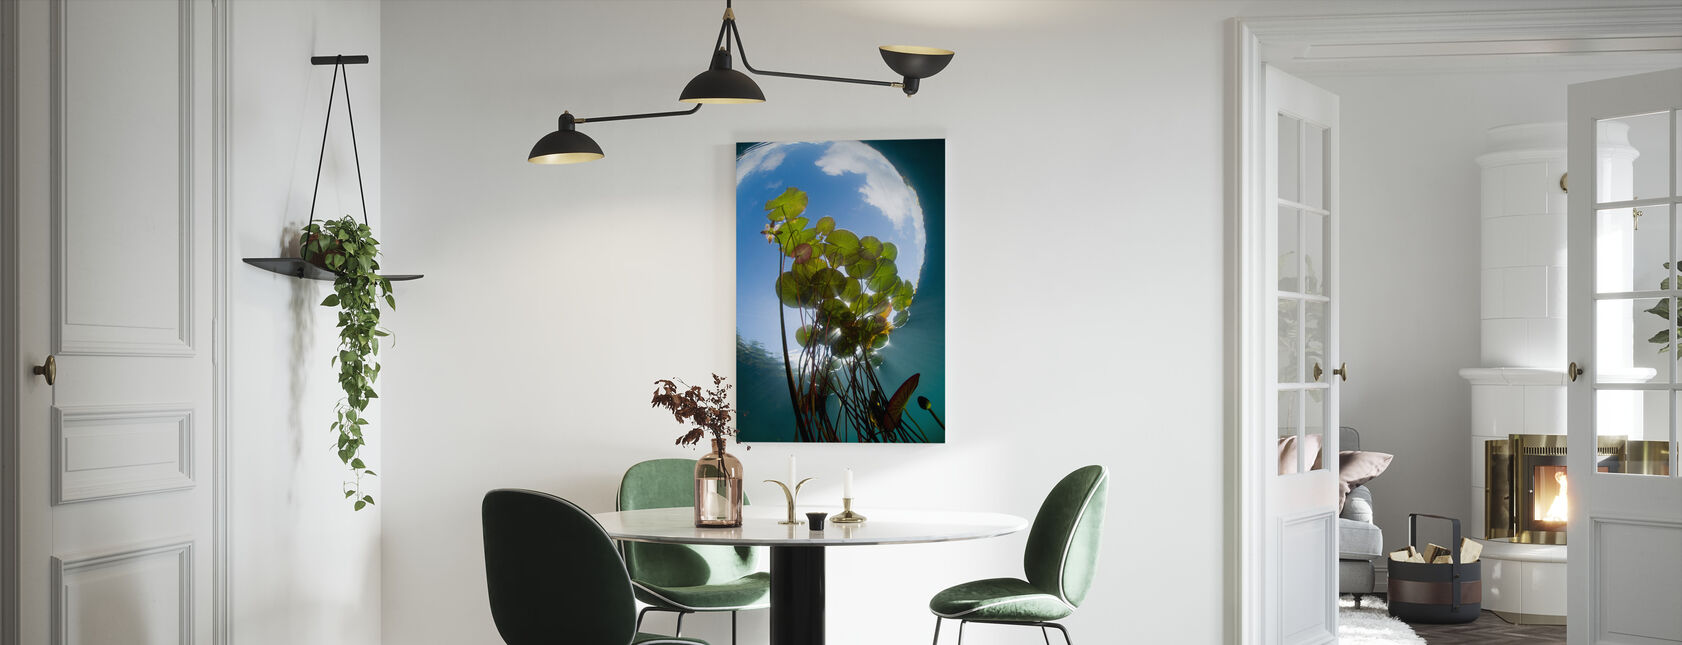 Floating Water Lilies - Canvas print - Kitchen